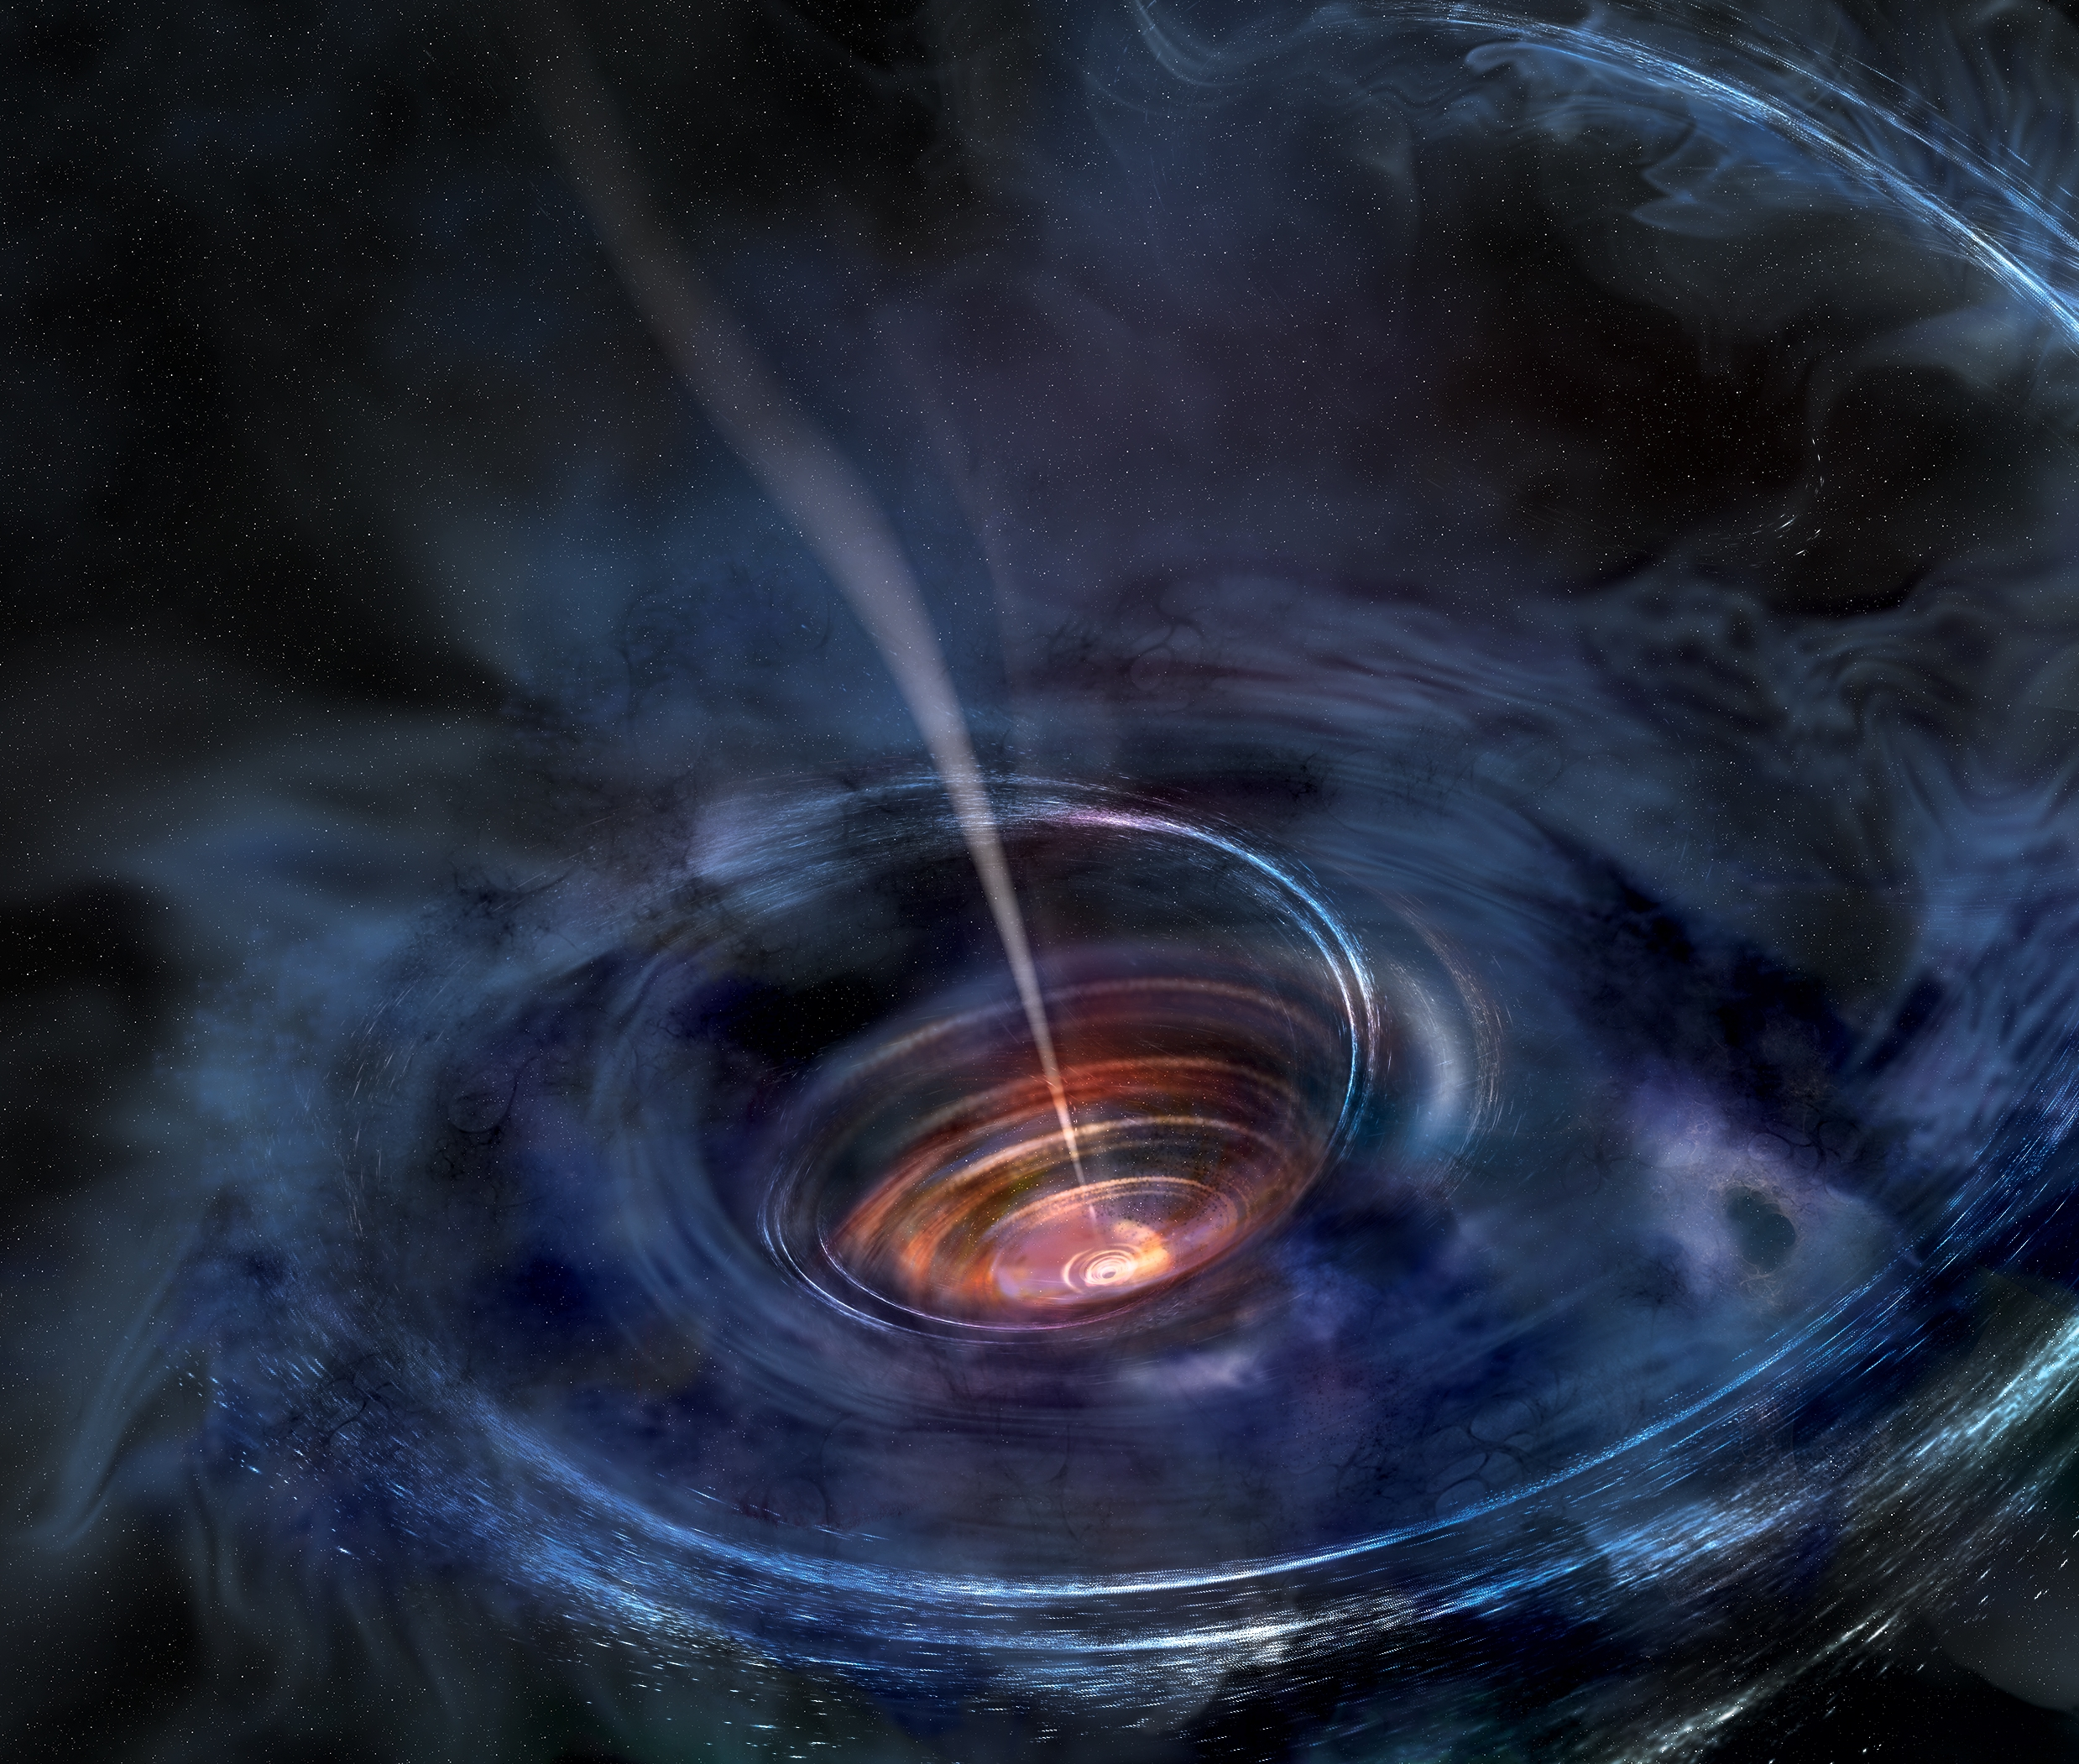 Artist Rendering Of A Supermassive Black Hole Following The Tidal Disruption Of A Star That Wandered